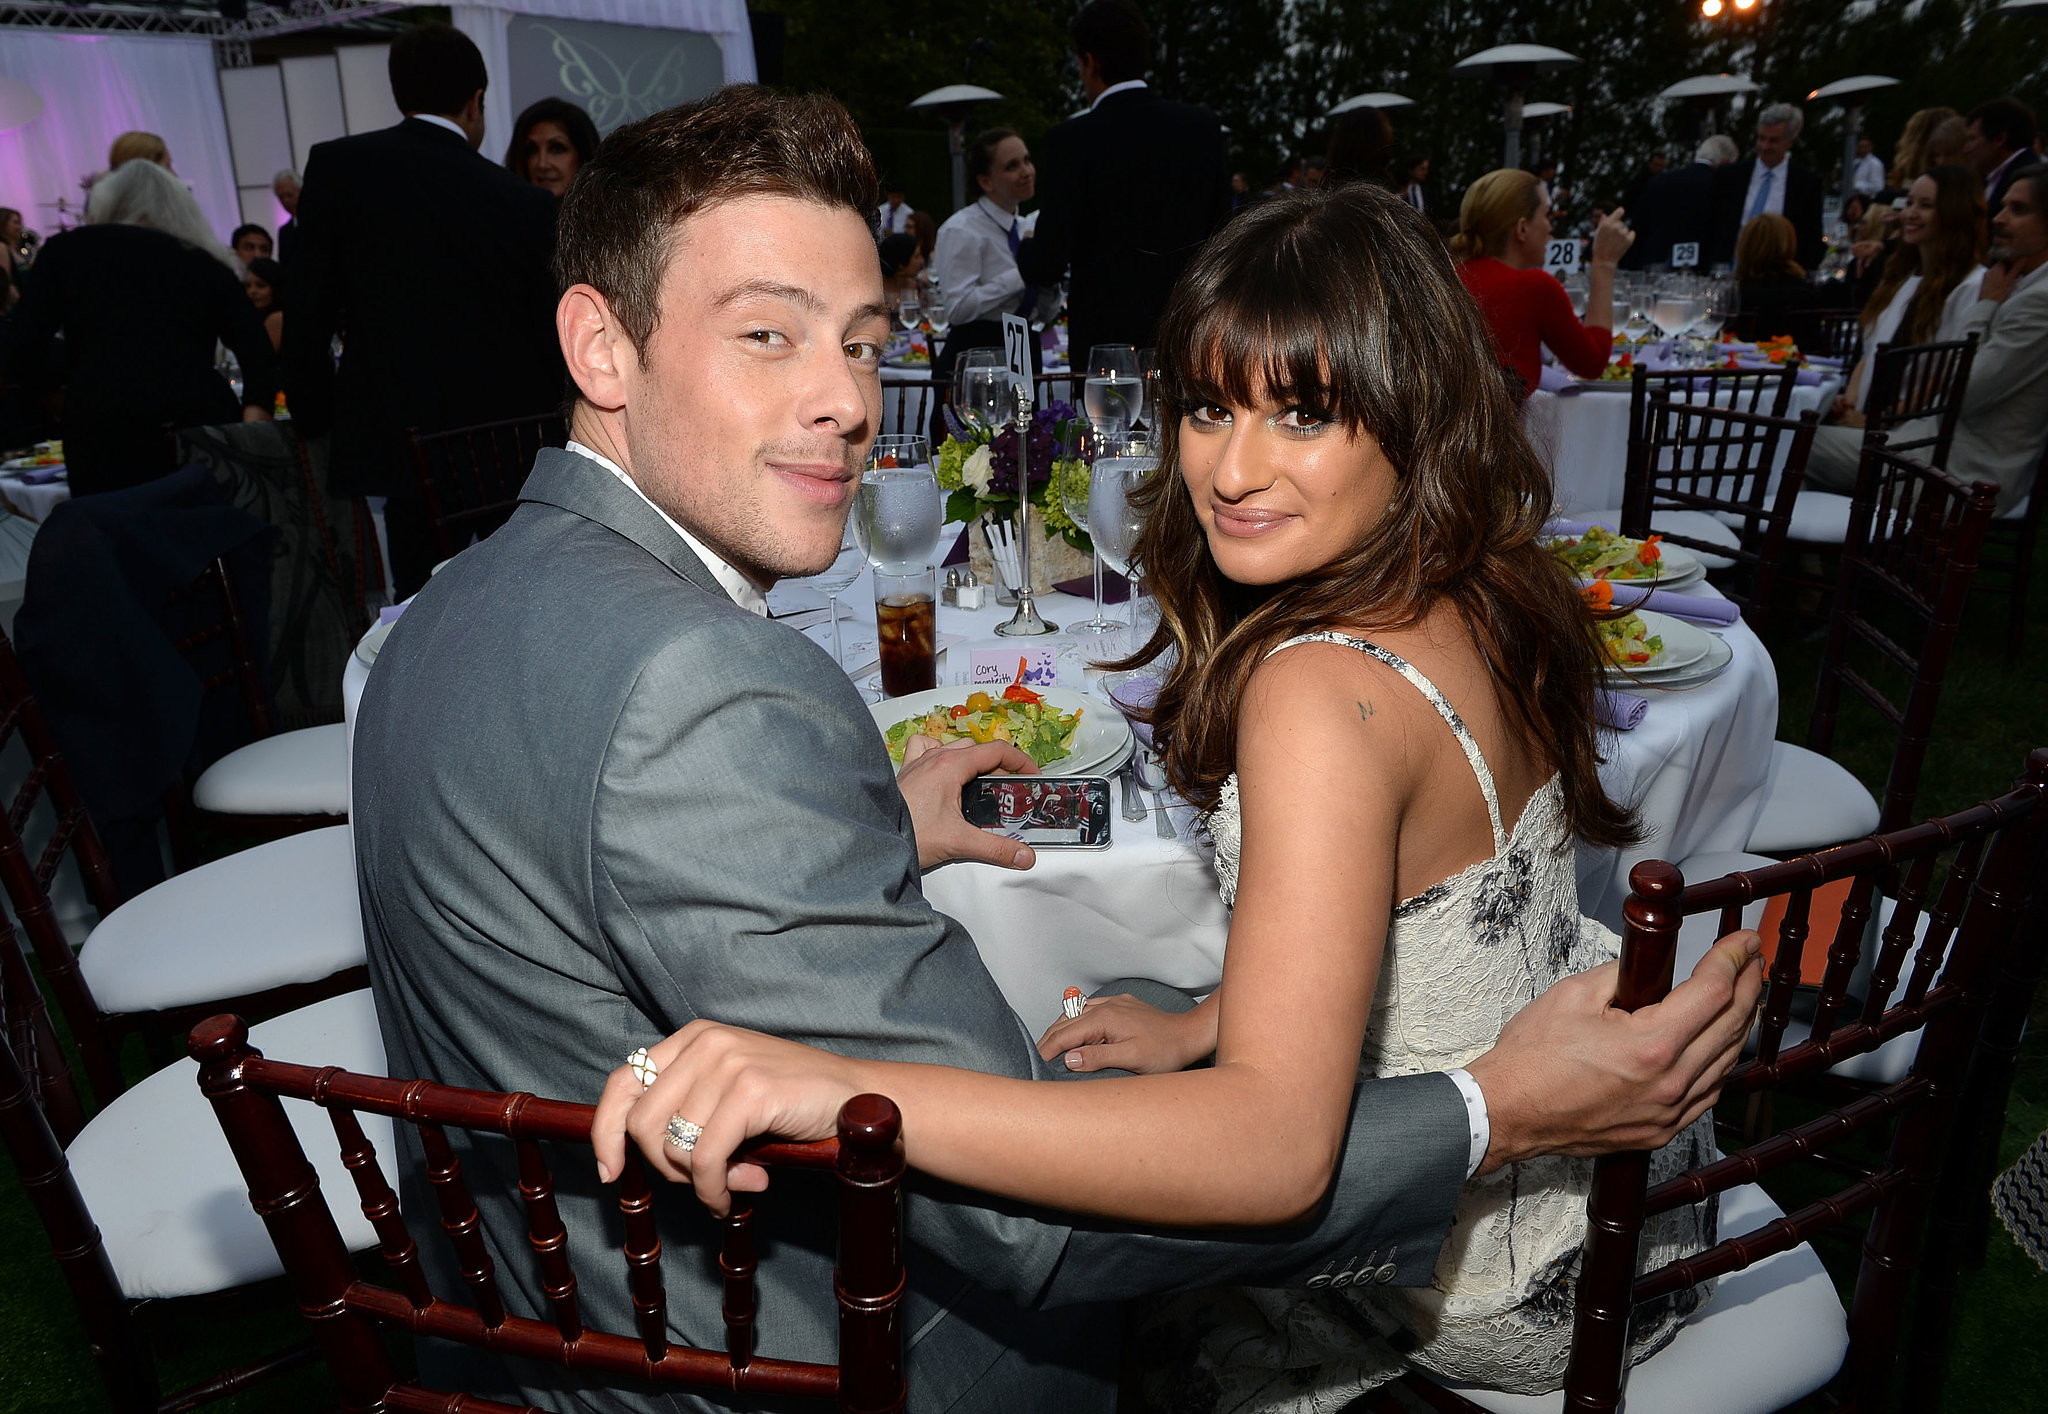 Cory Monteith Returns to the Red Carpet With Lea Michele